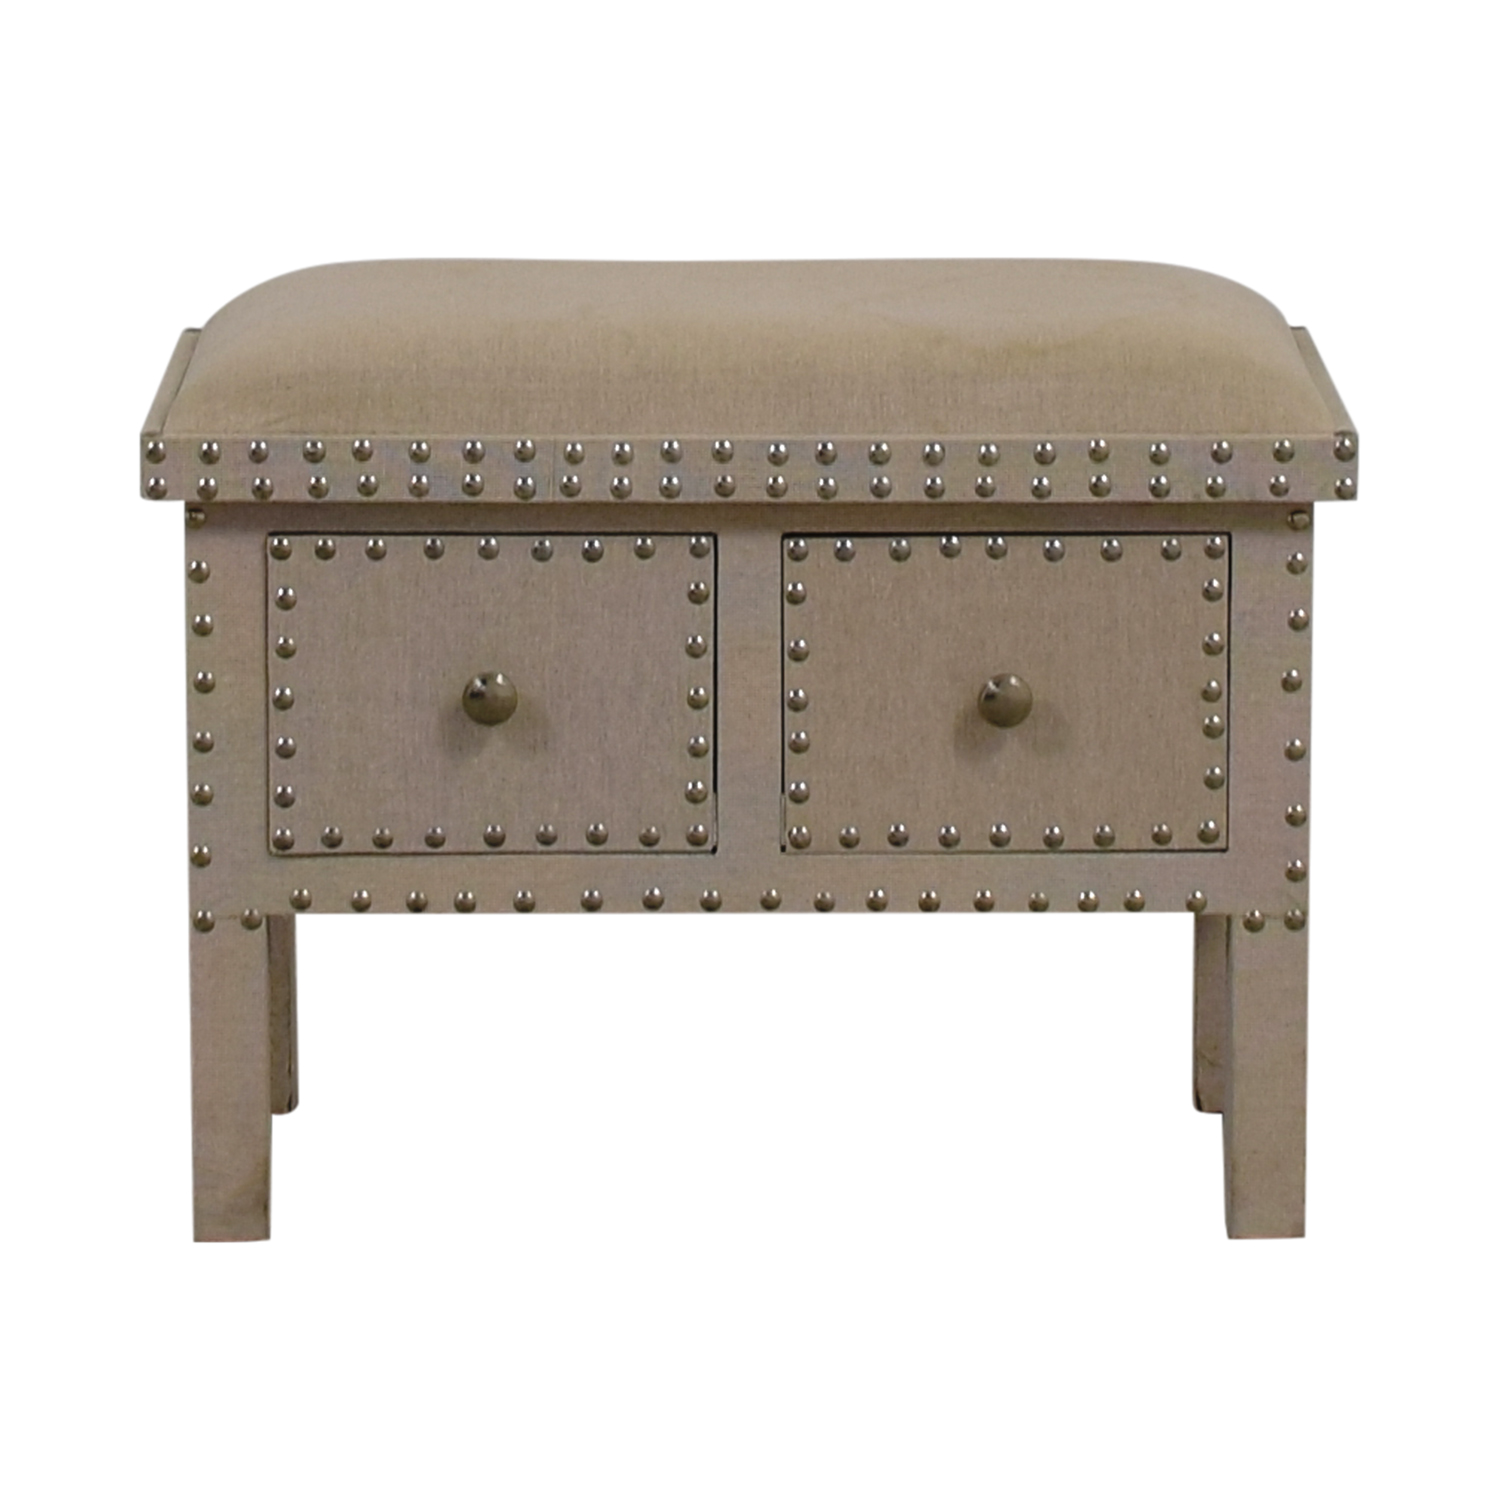 Beige Linen Nailhead Bench with Two-Drawers / Benches